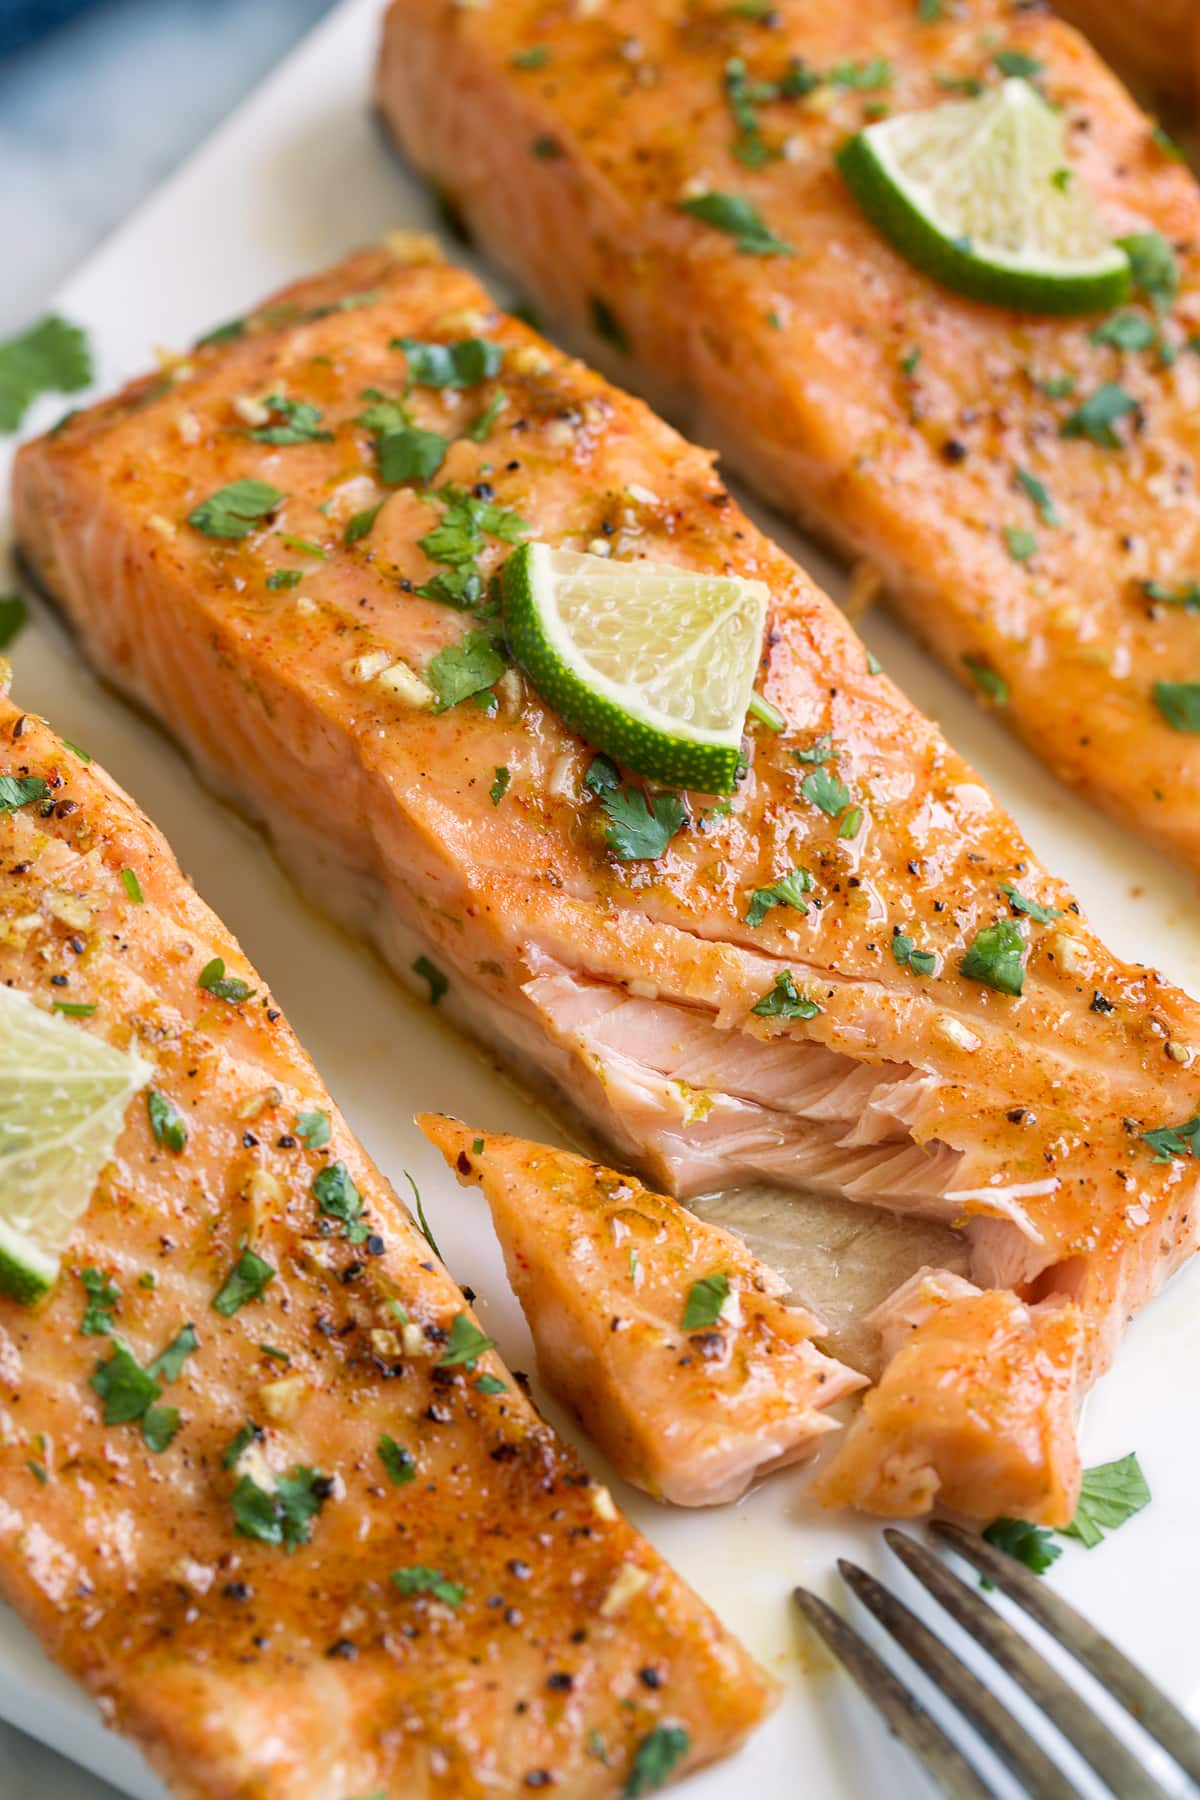 Salmon fillet with one pieces missing to show texture of interior.